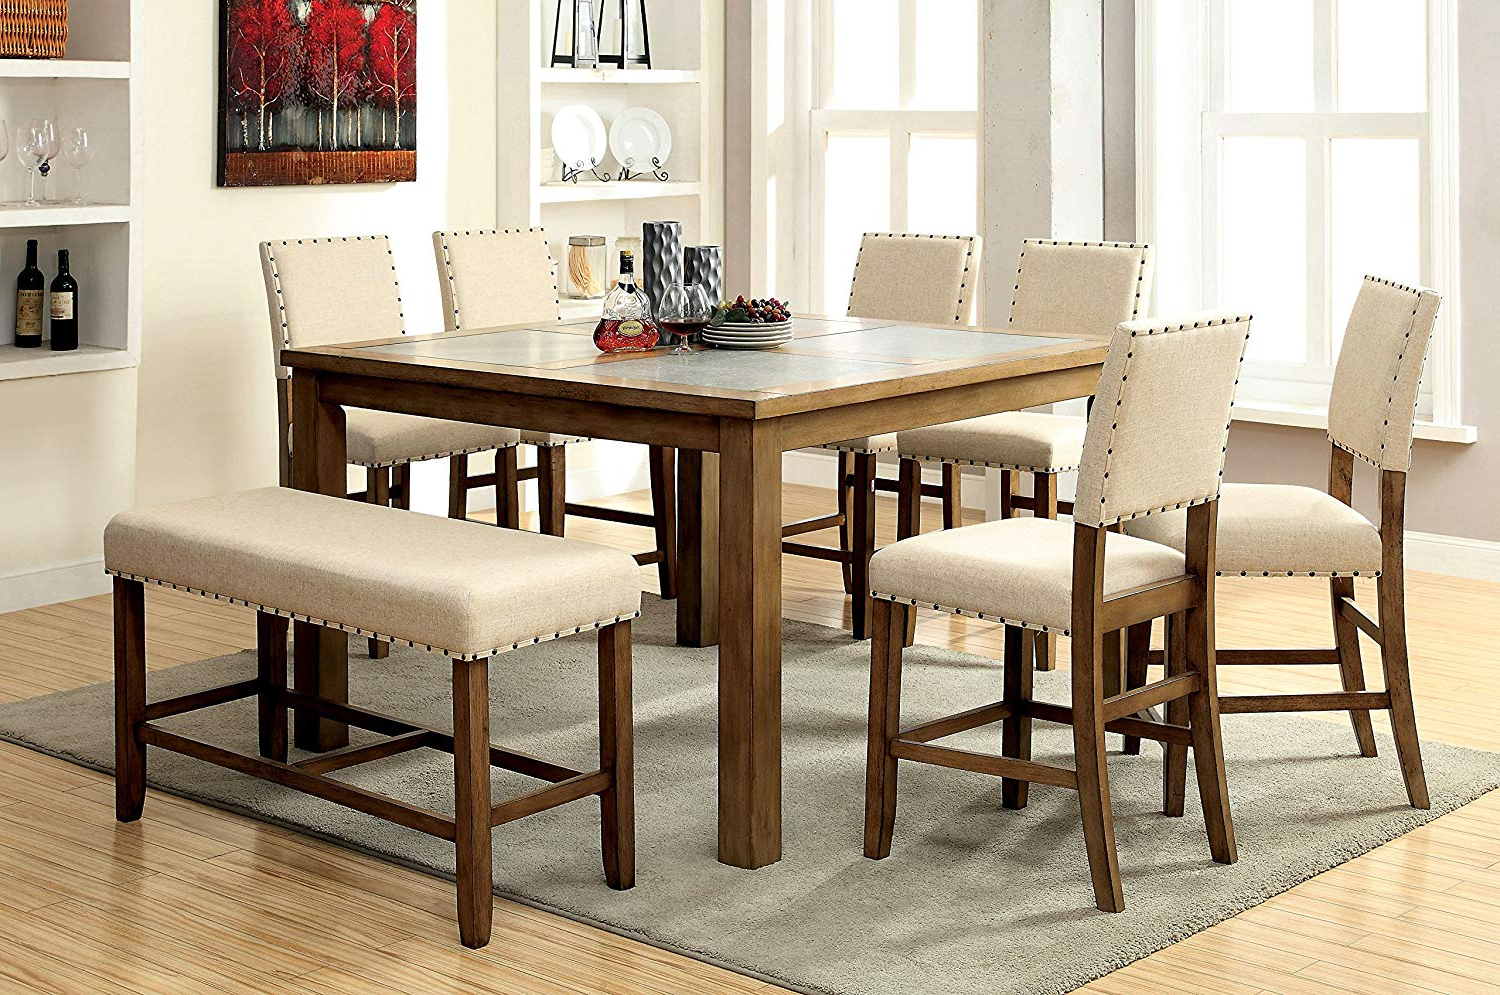 Well Liked Furniture Of America Lucena 8 Piece Transitional Pub Dining Set Within Transitional Driftwood Casual Dining Tables (View 4 of 25)